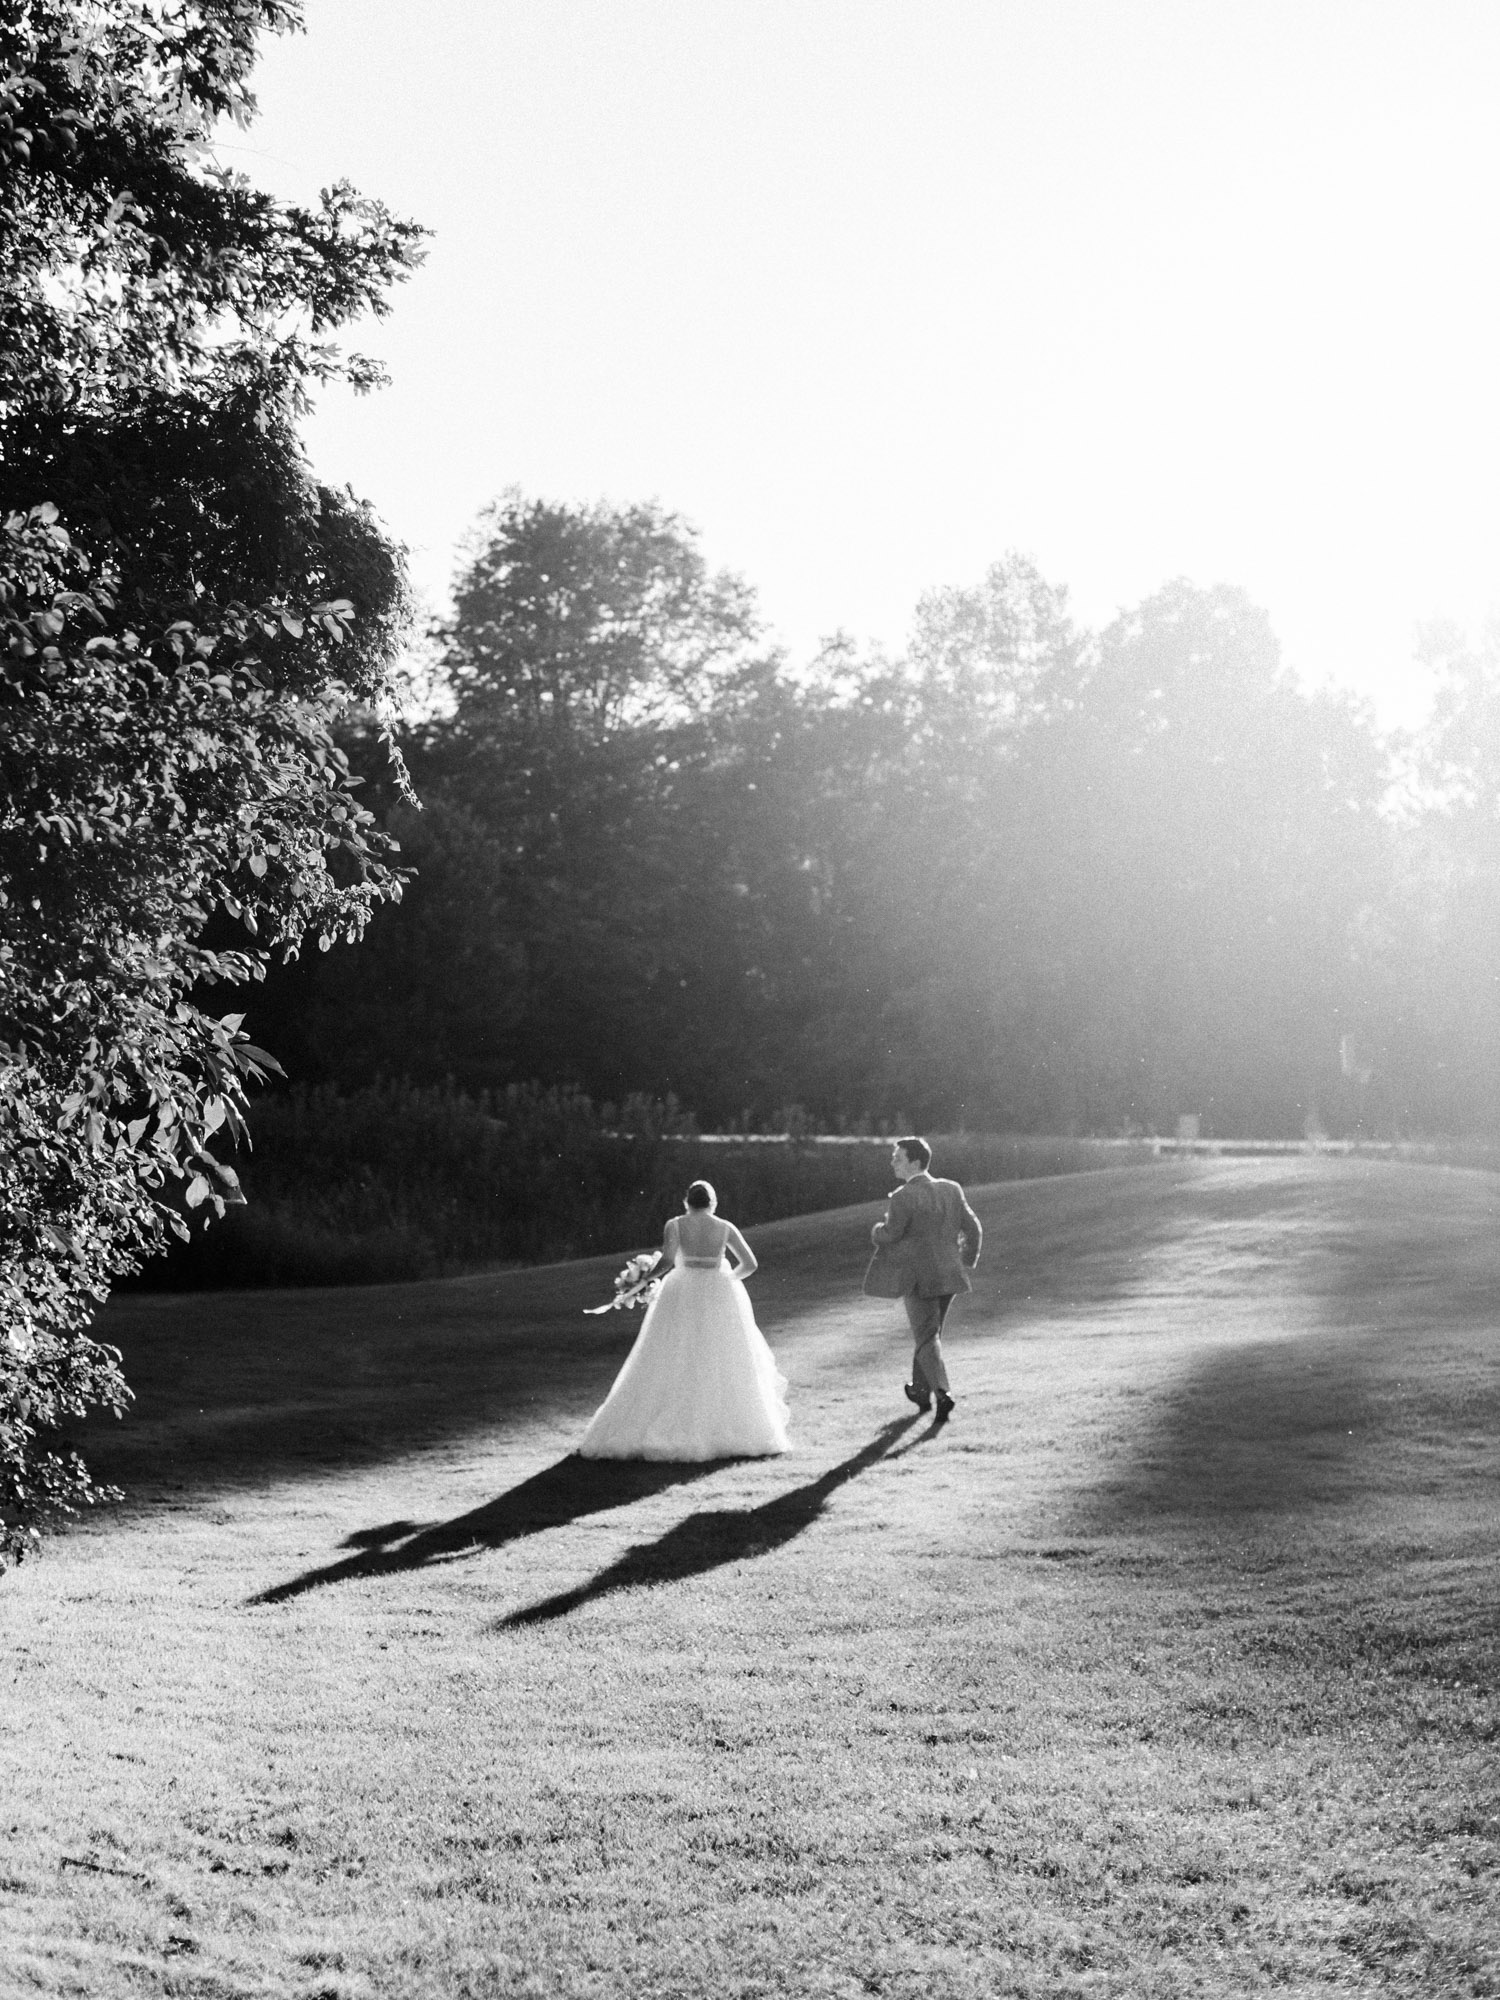 A bride and groom run off into the sunset on black and white film in Ann Arbor, Michigan